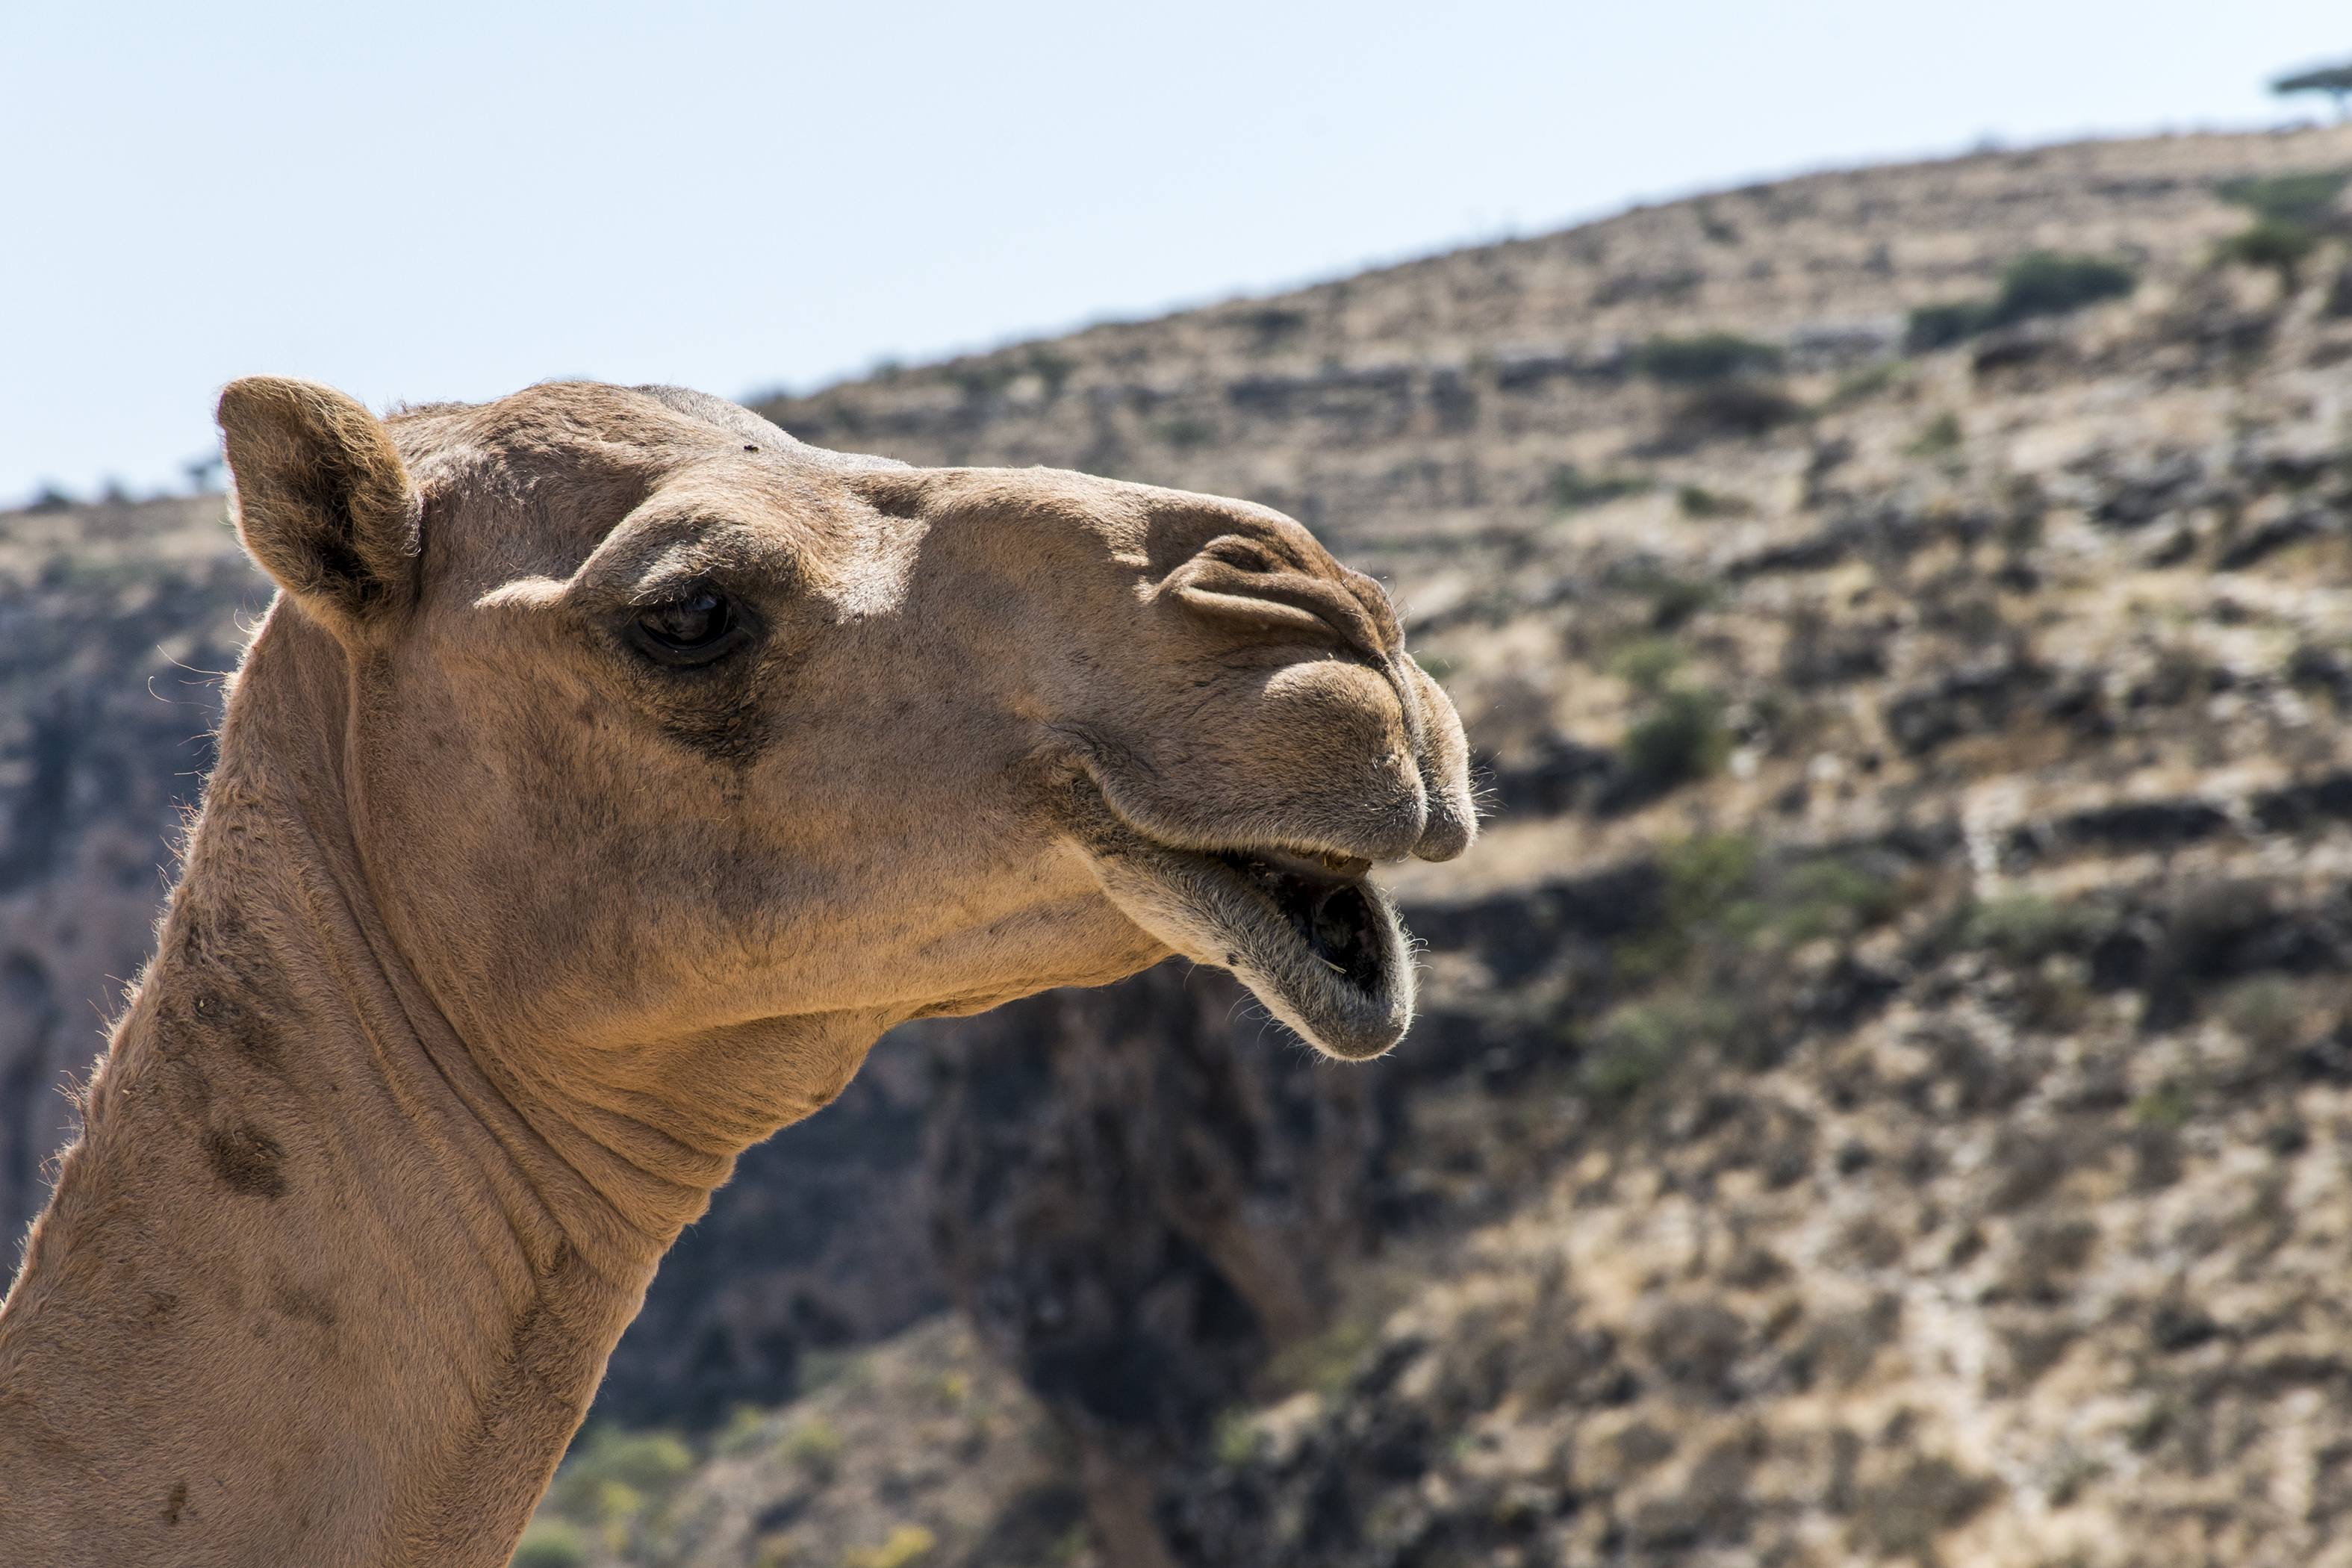 The weirdest things we learned this week: Nazis ate camel poop and pregnancy tests spread a fungal plague